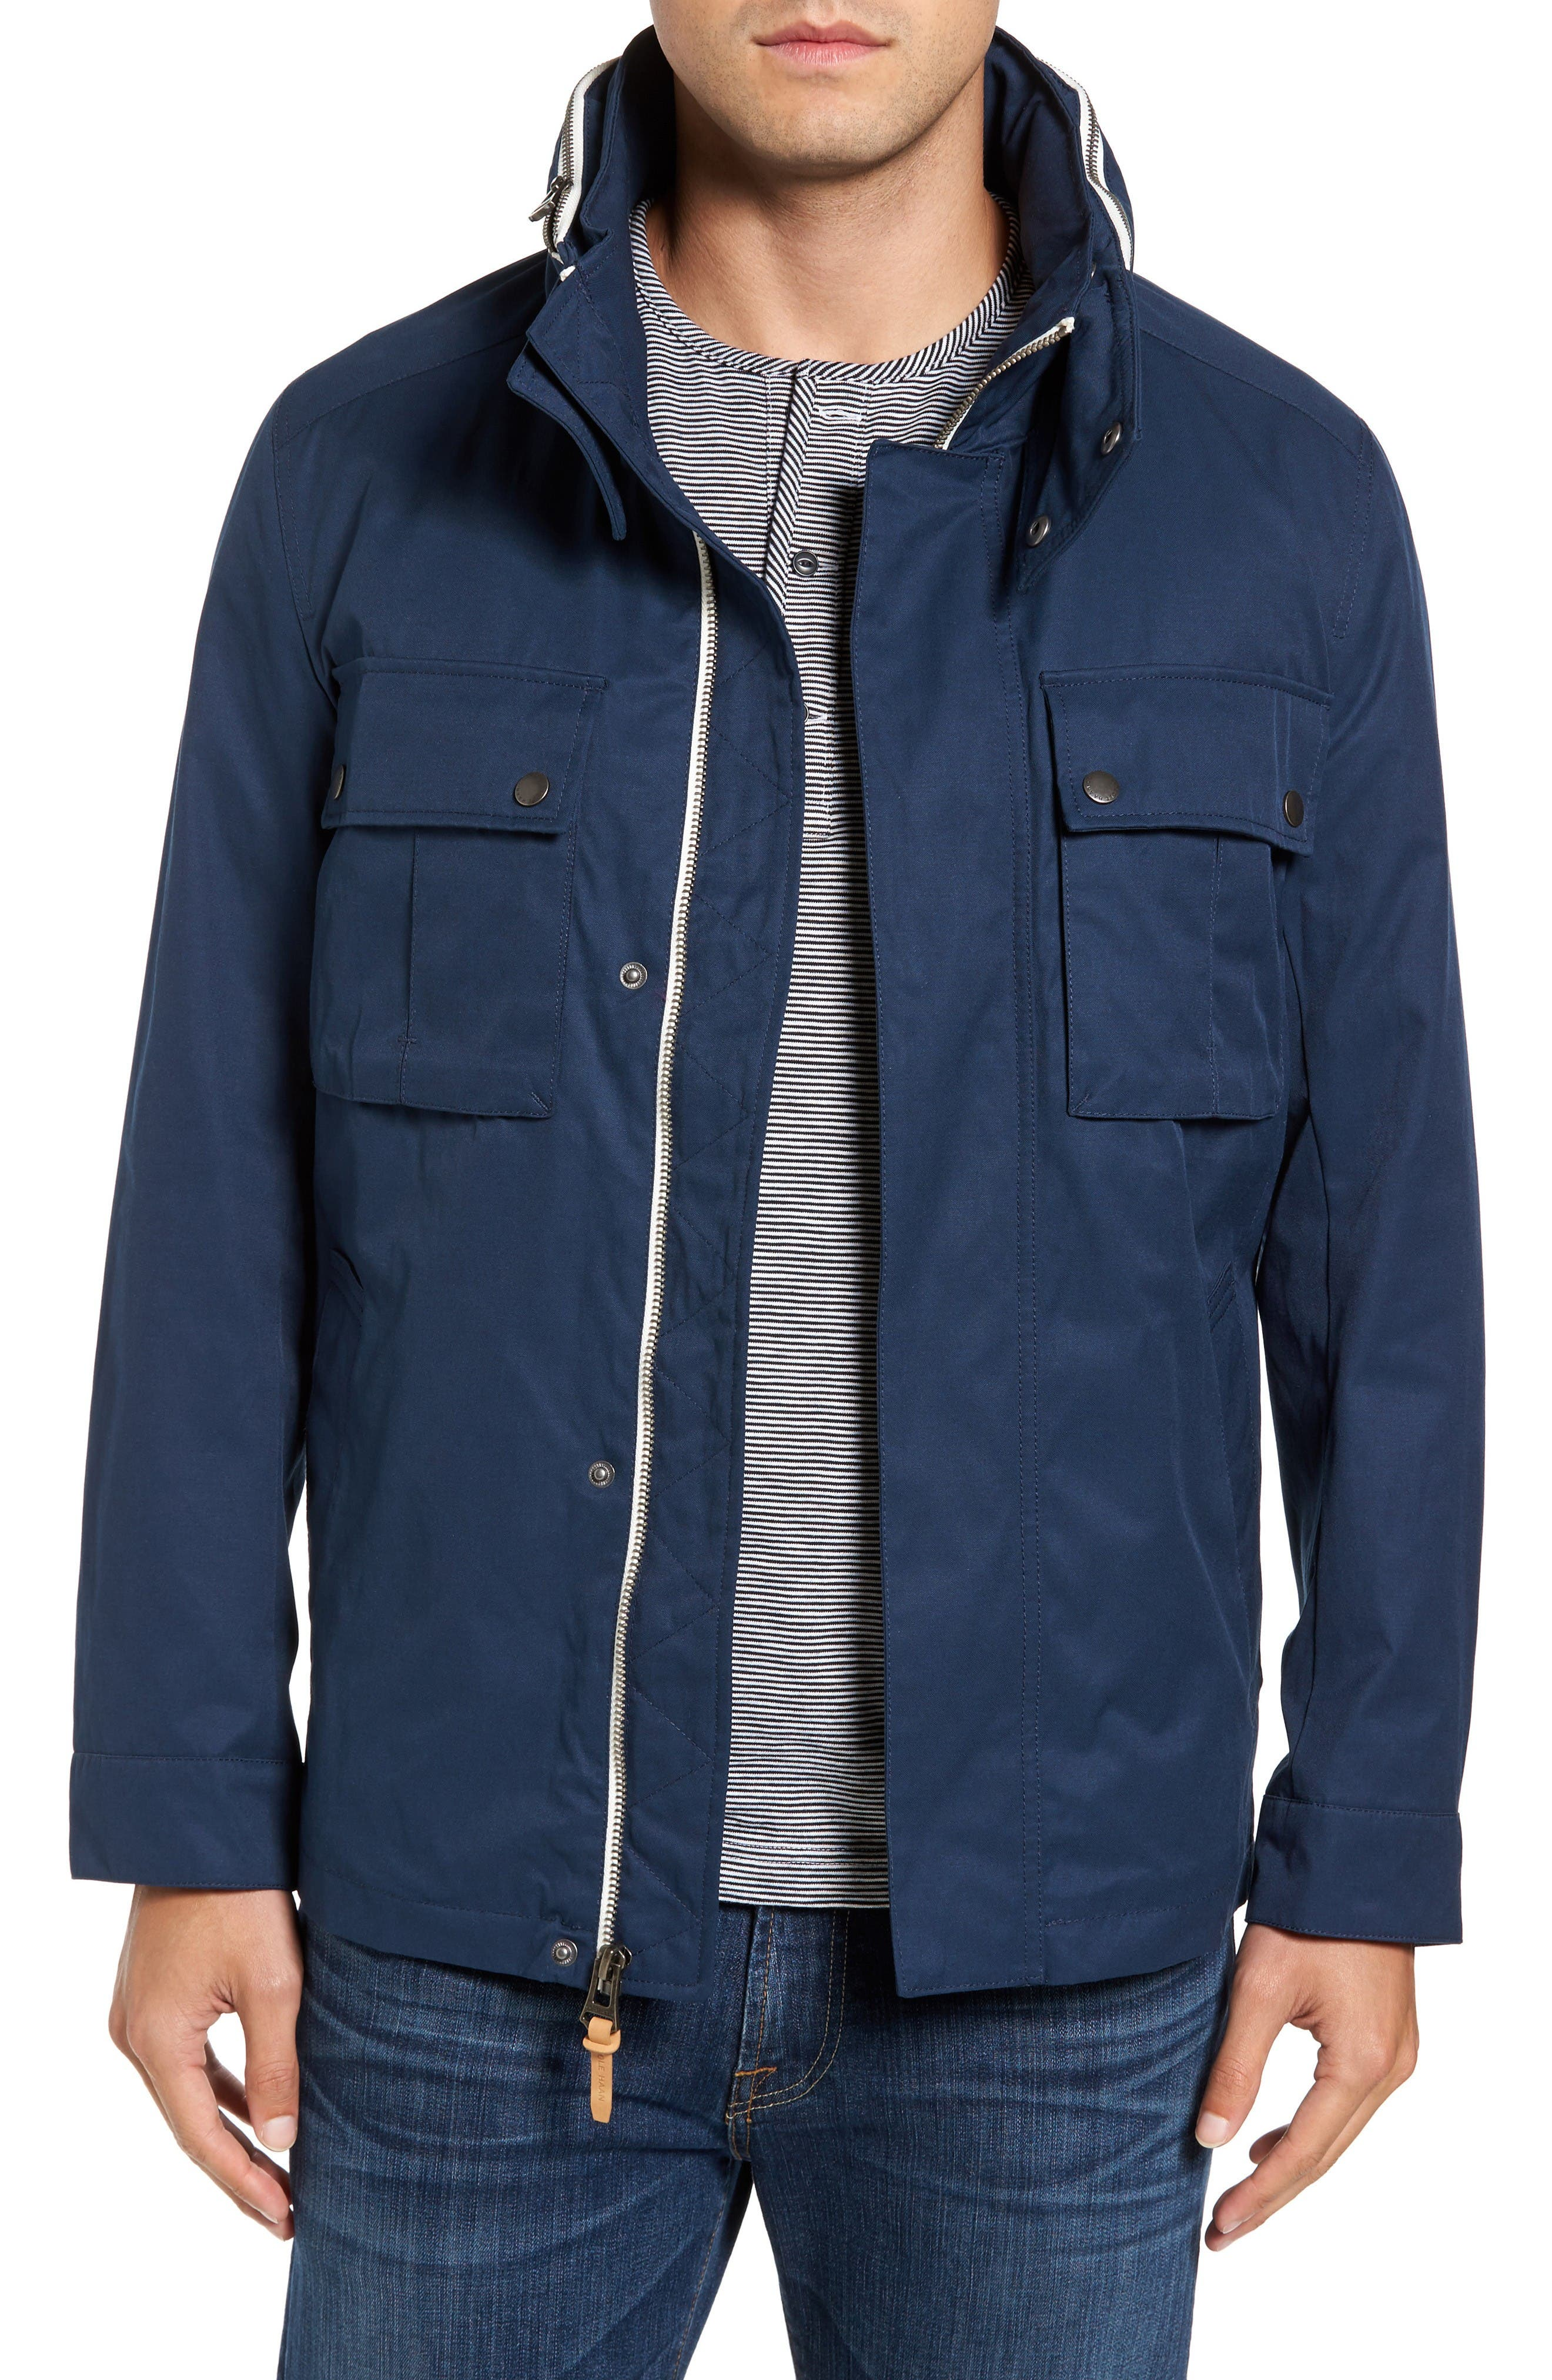 Cole Haan Military Oxford Jacket